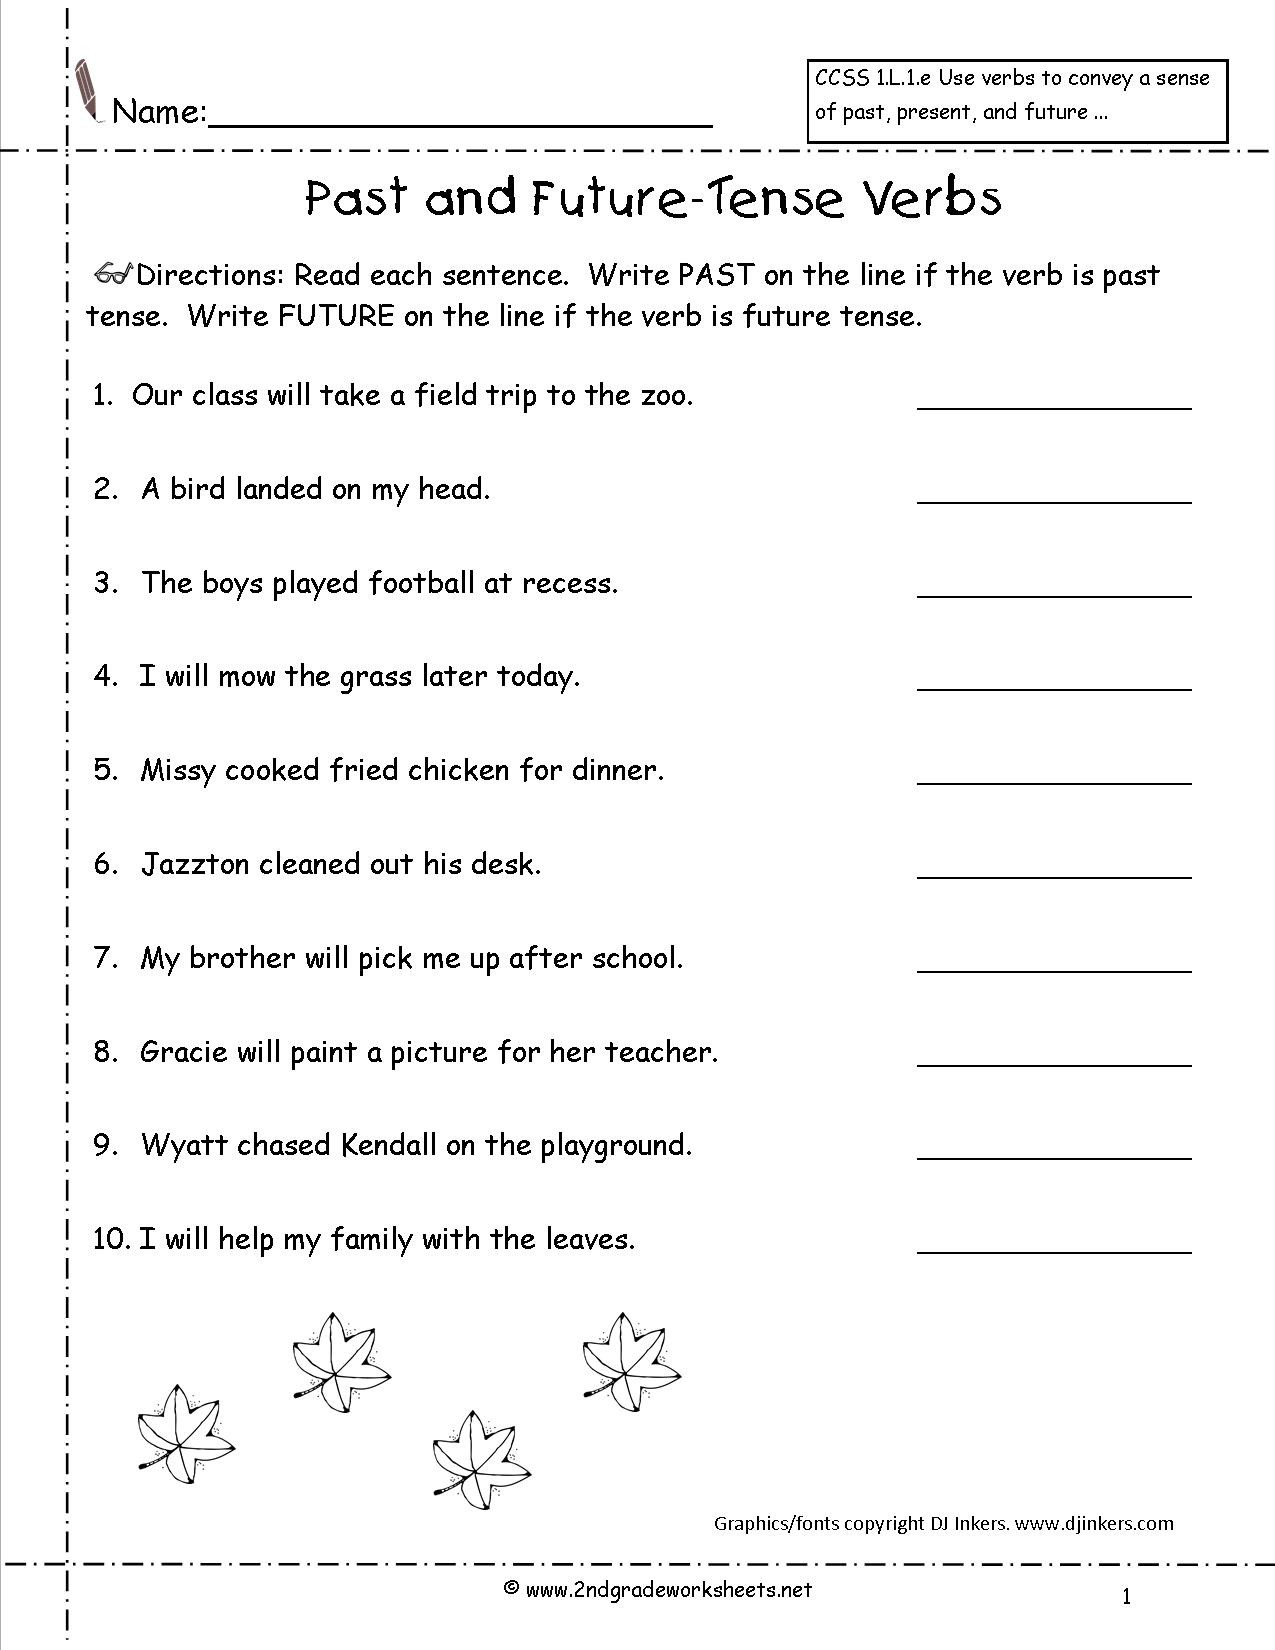 Verbs Worksheets for 1st Grade Second Grade Verb Worksheets